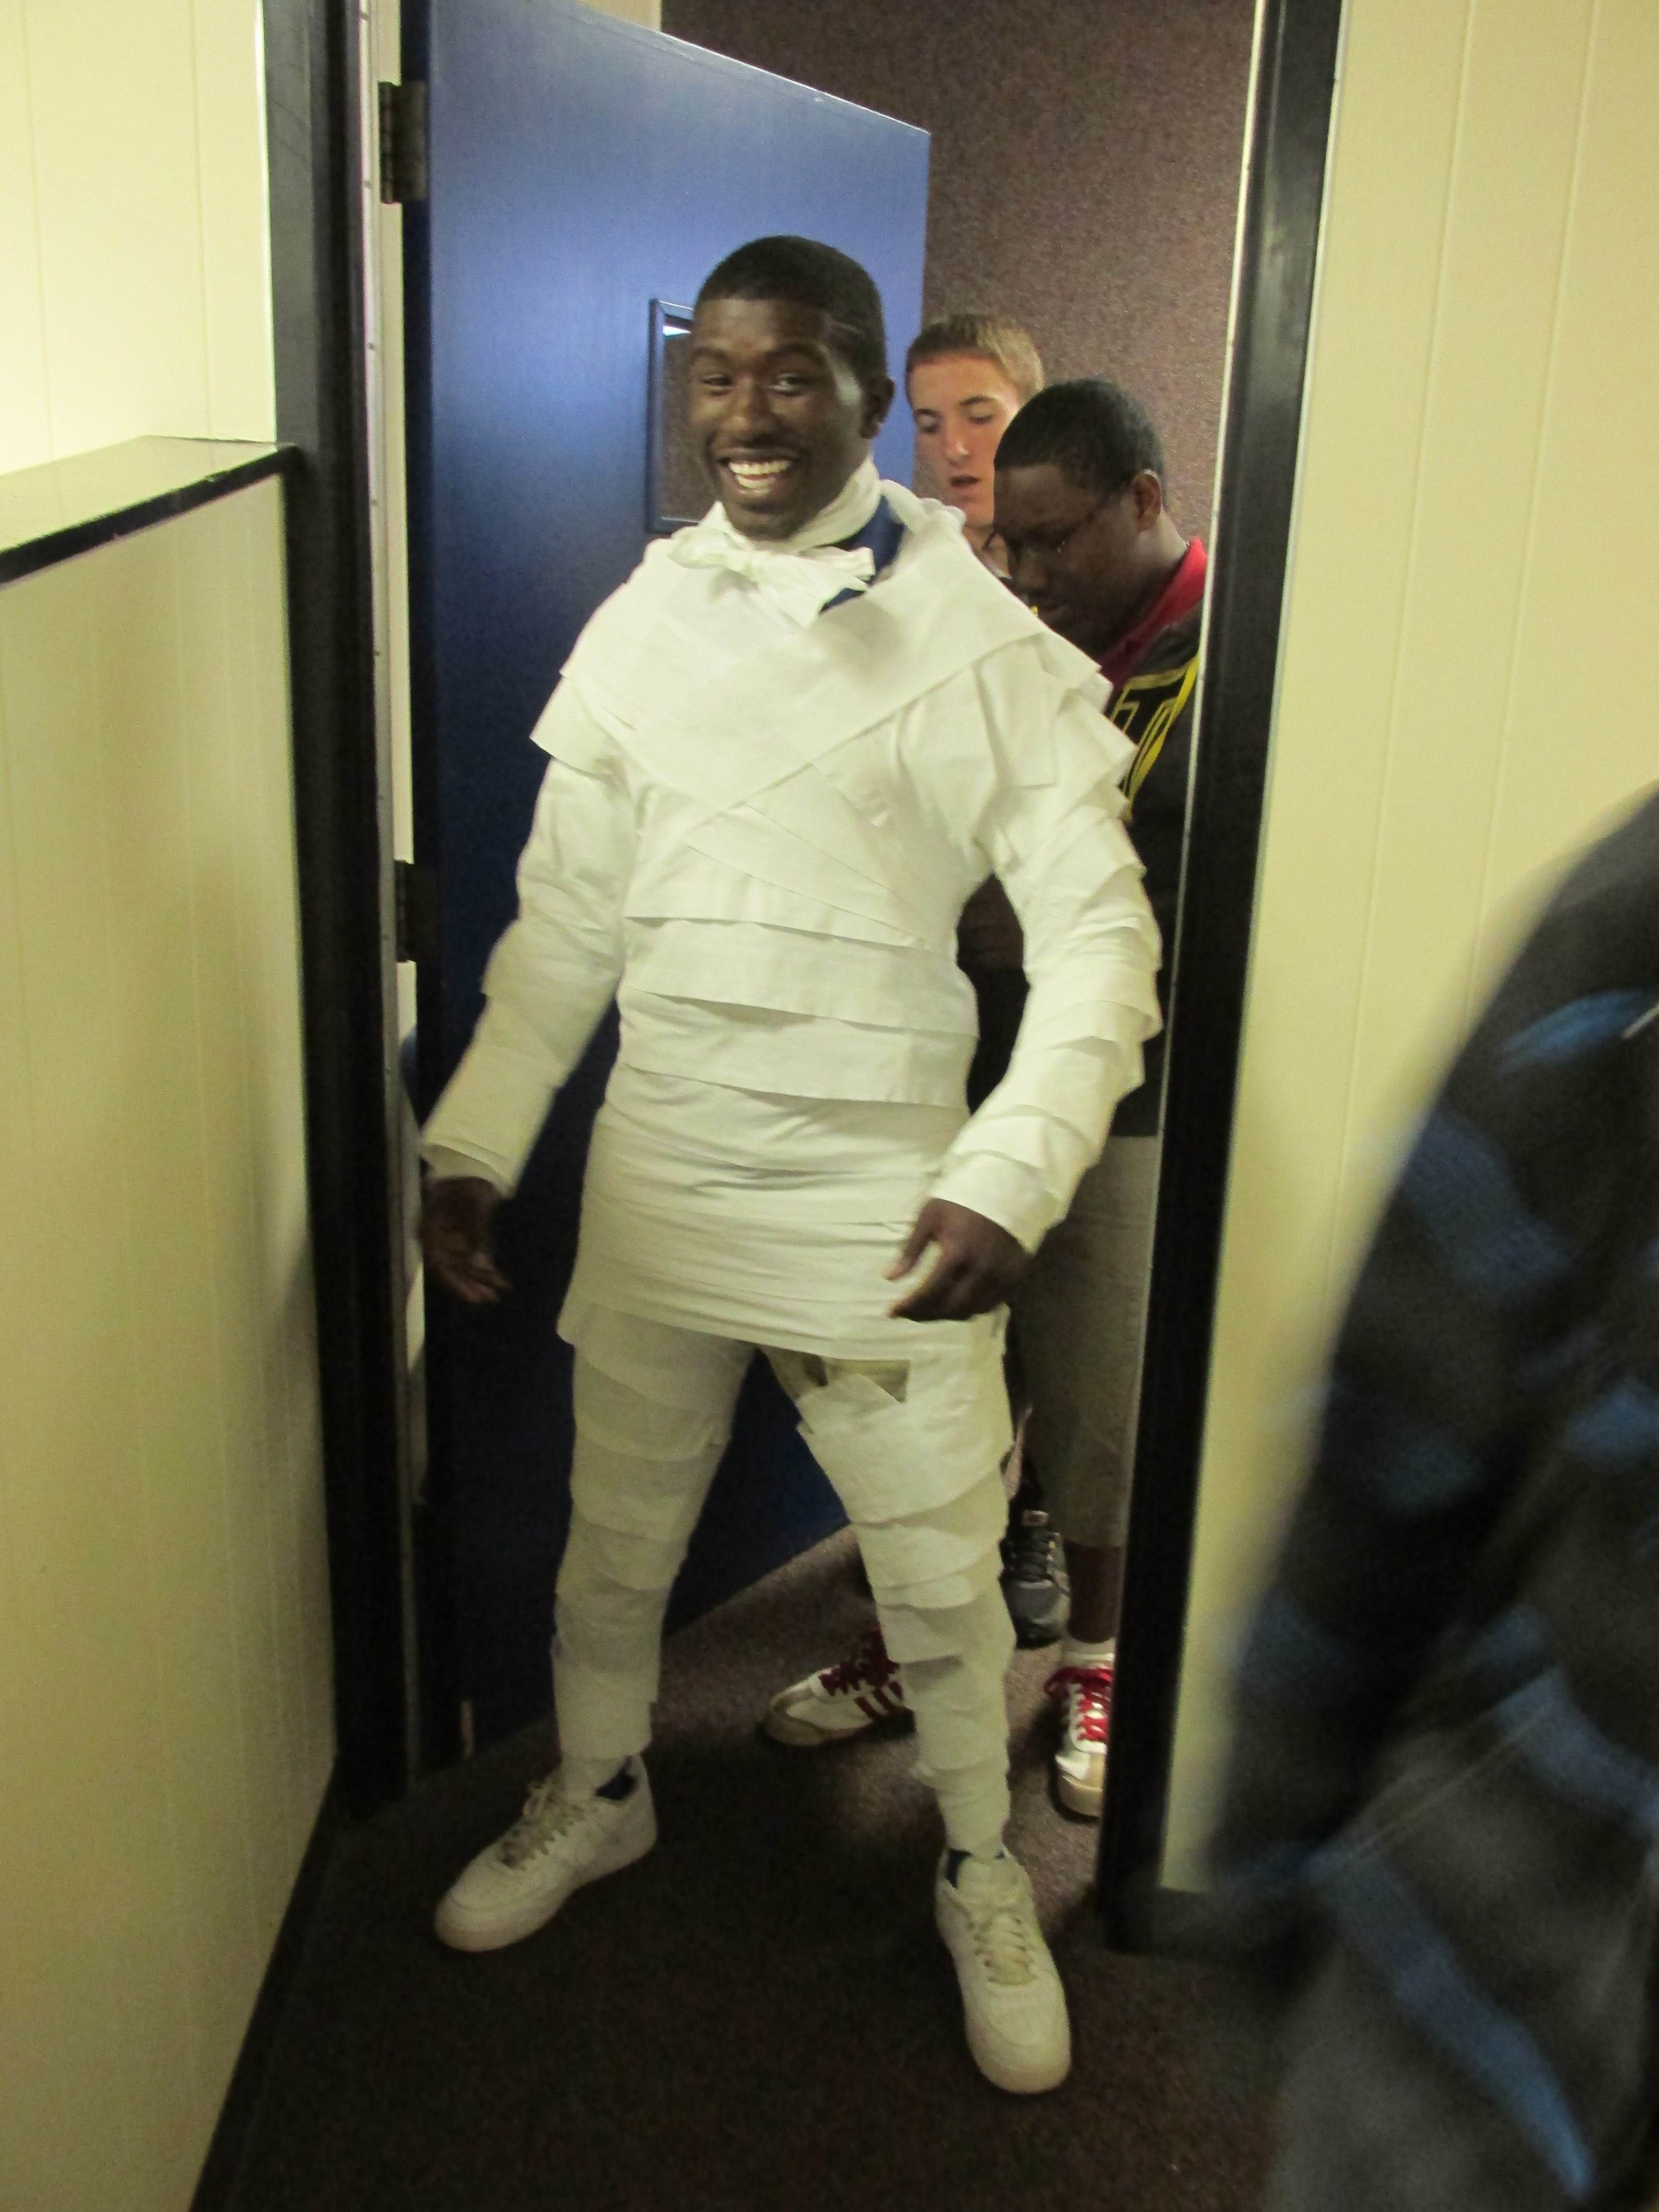 Choir tuxedo made out of toilet paper